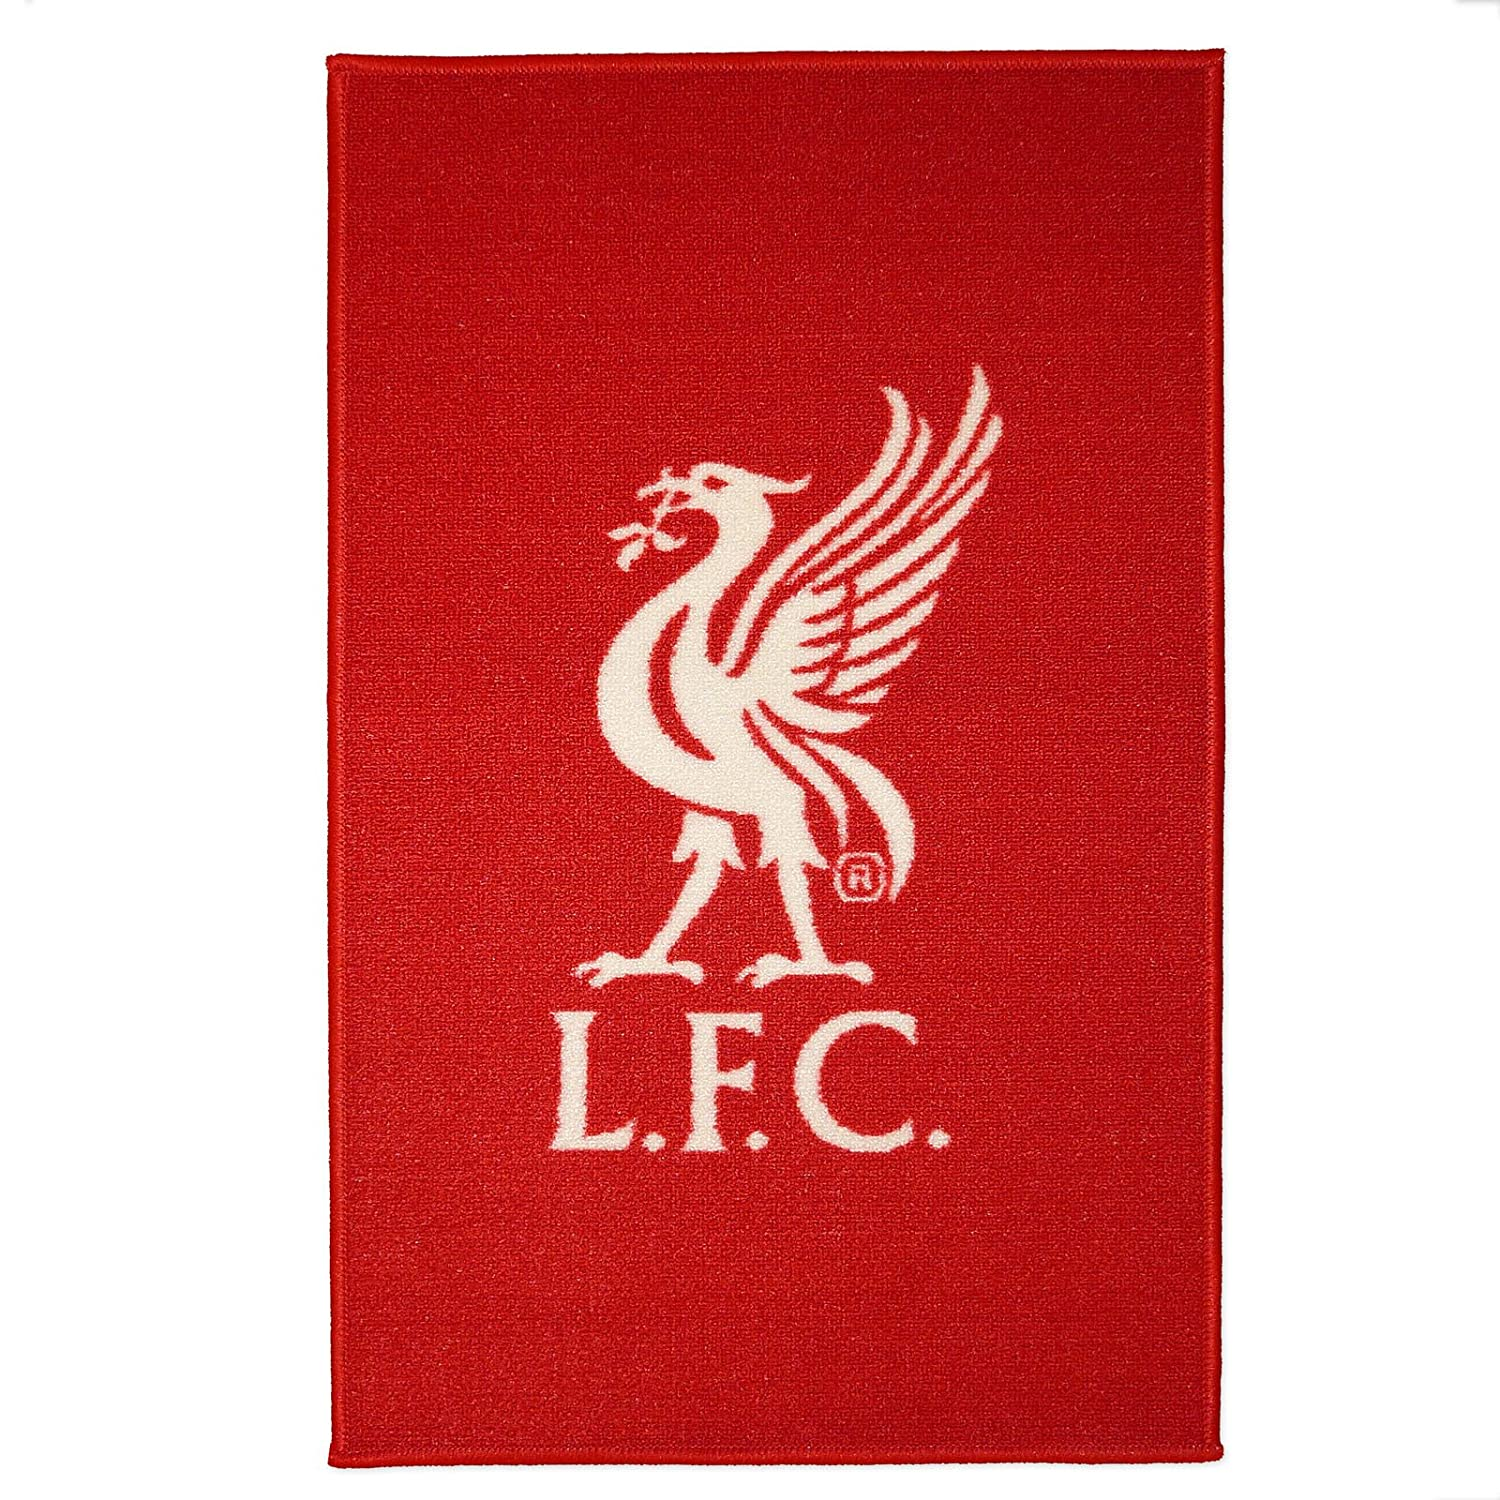 Liverpool Football Club Crest Rug TU Football Souvenirs UKASNHKTN12451